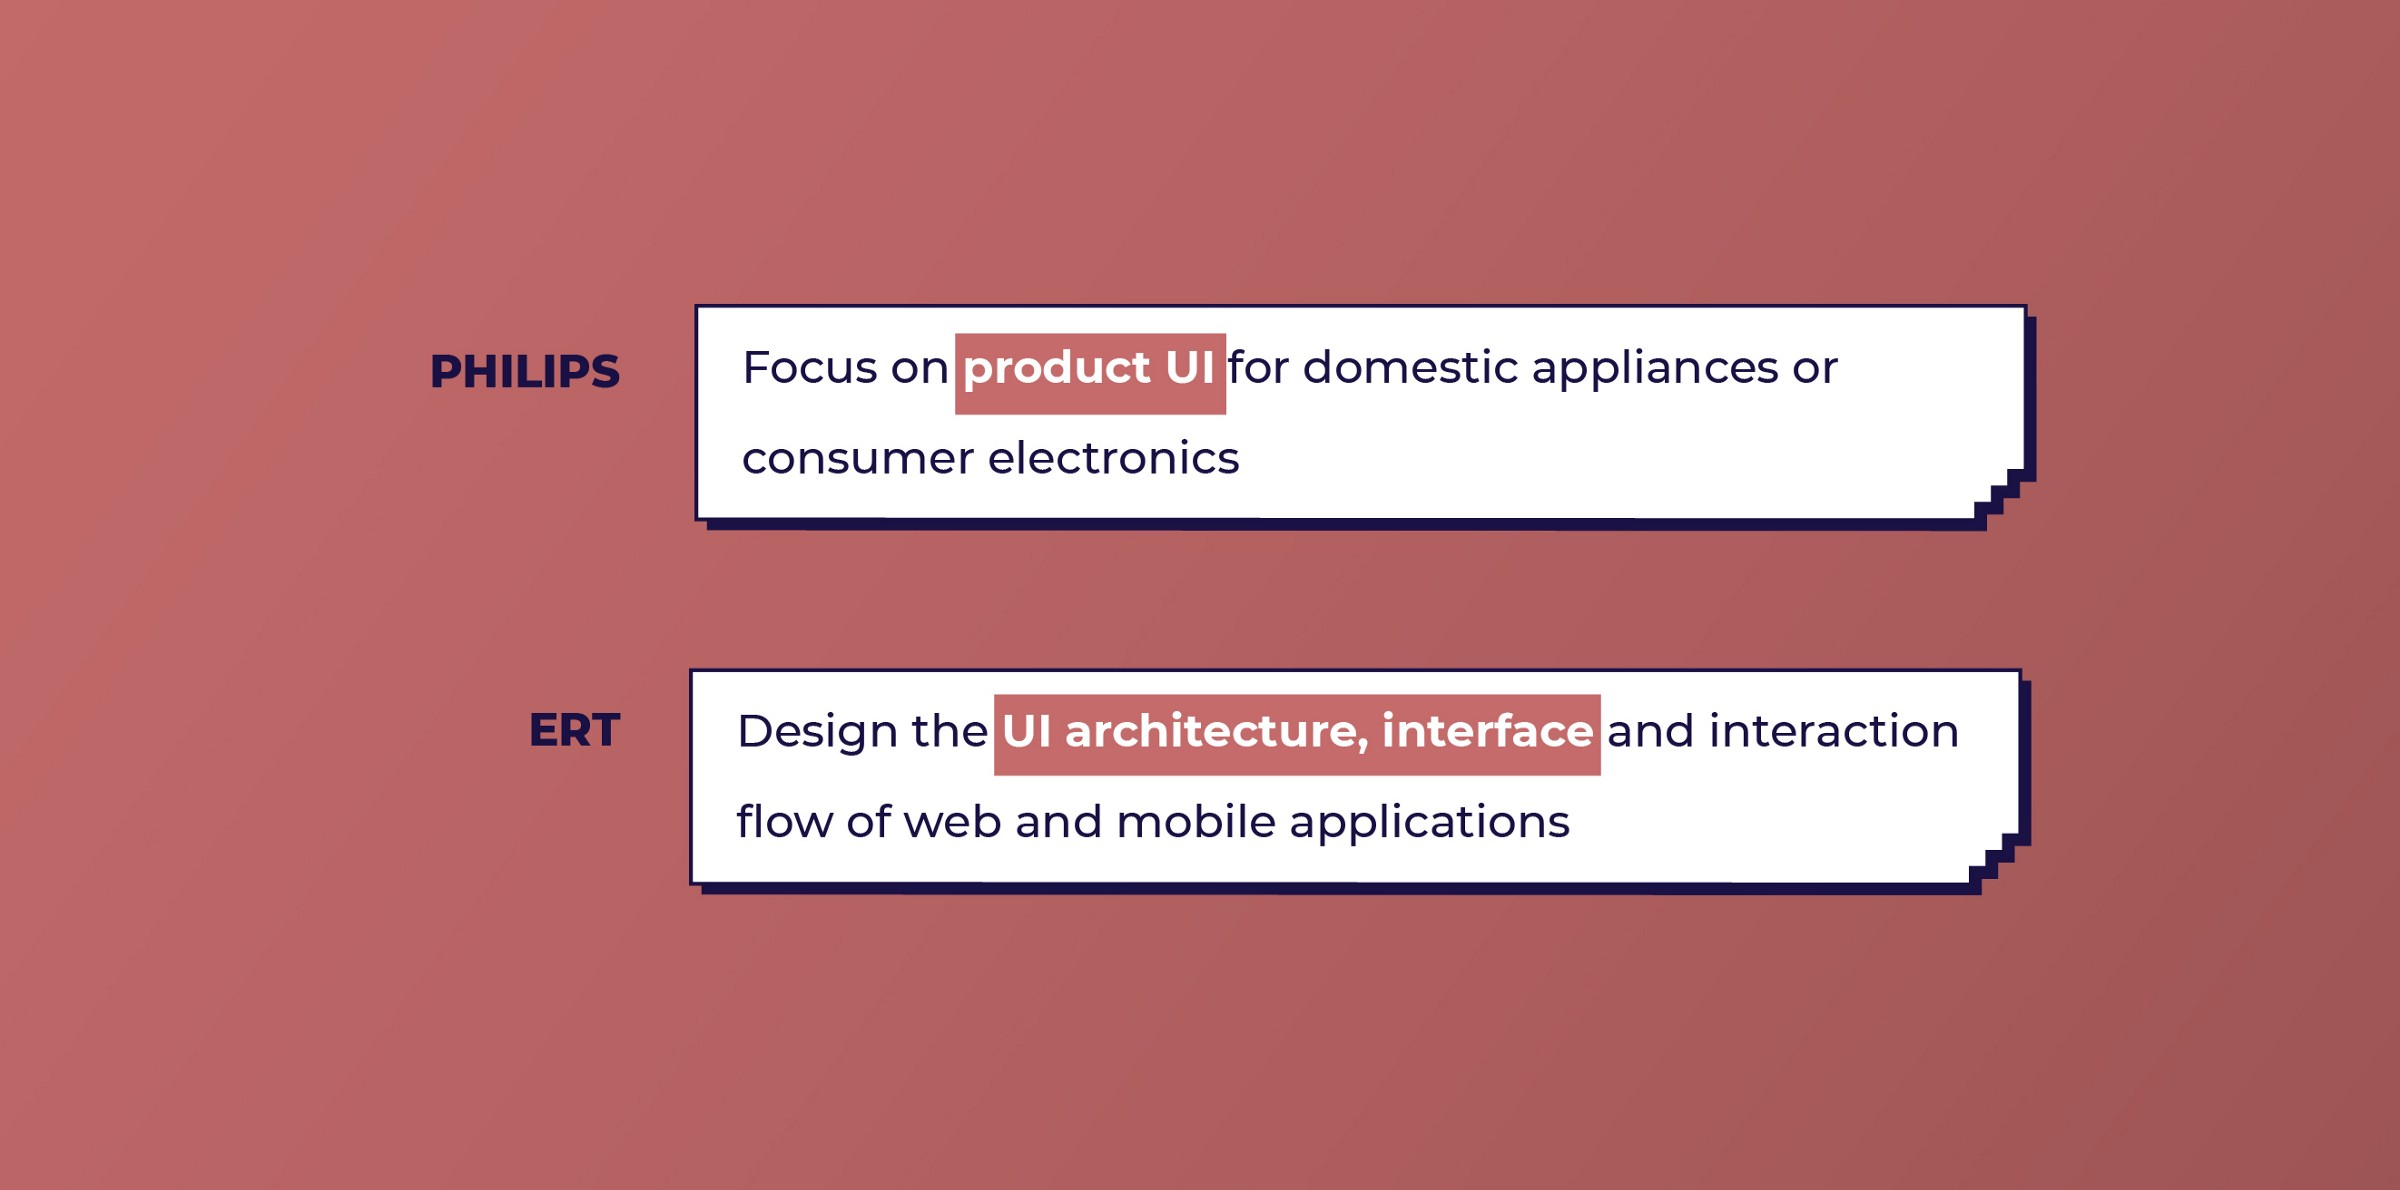 Philips and ERT look for UI work from UX designers